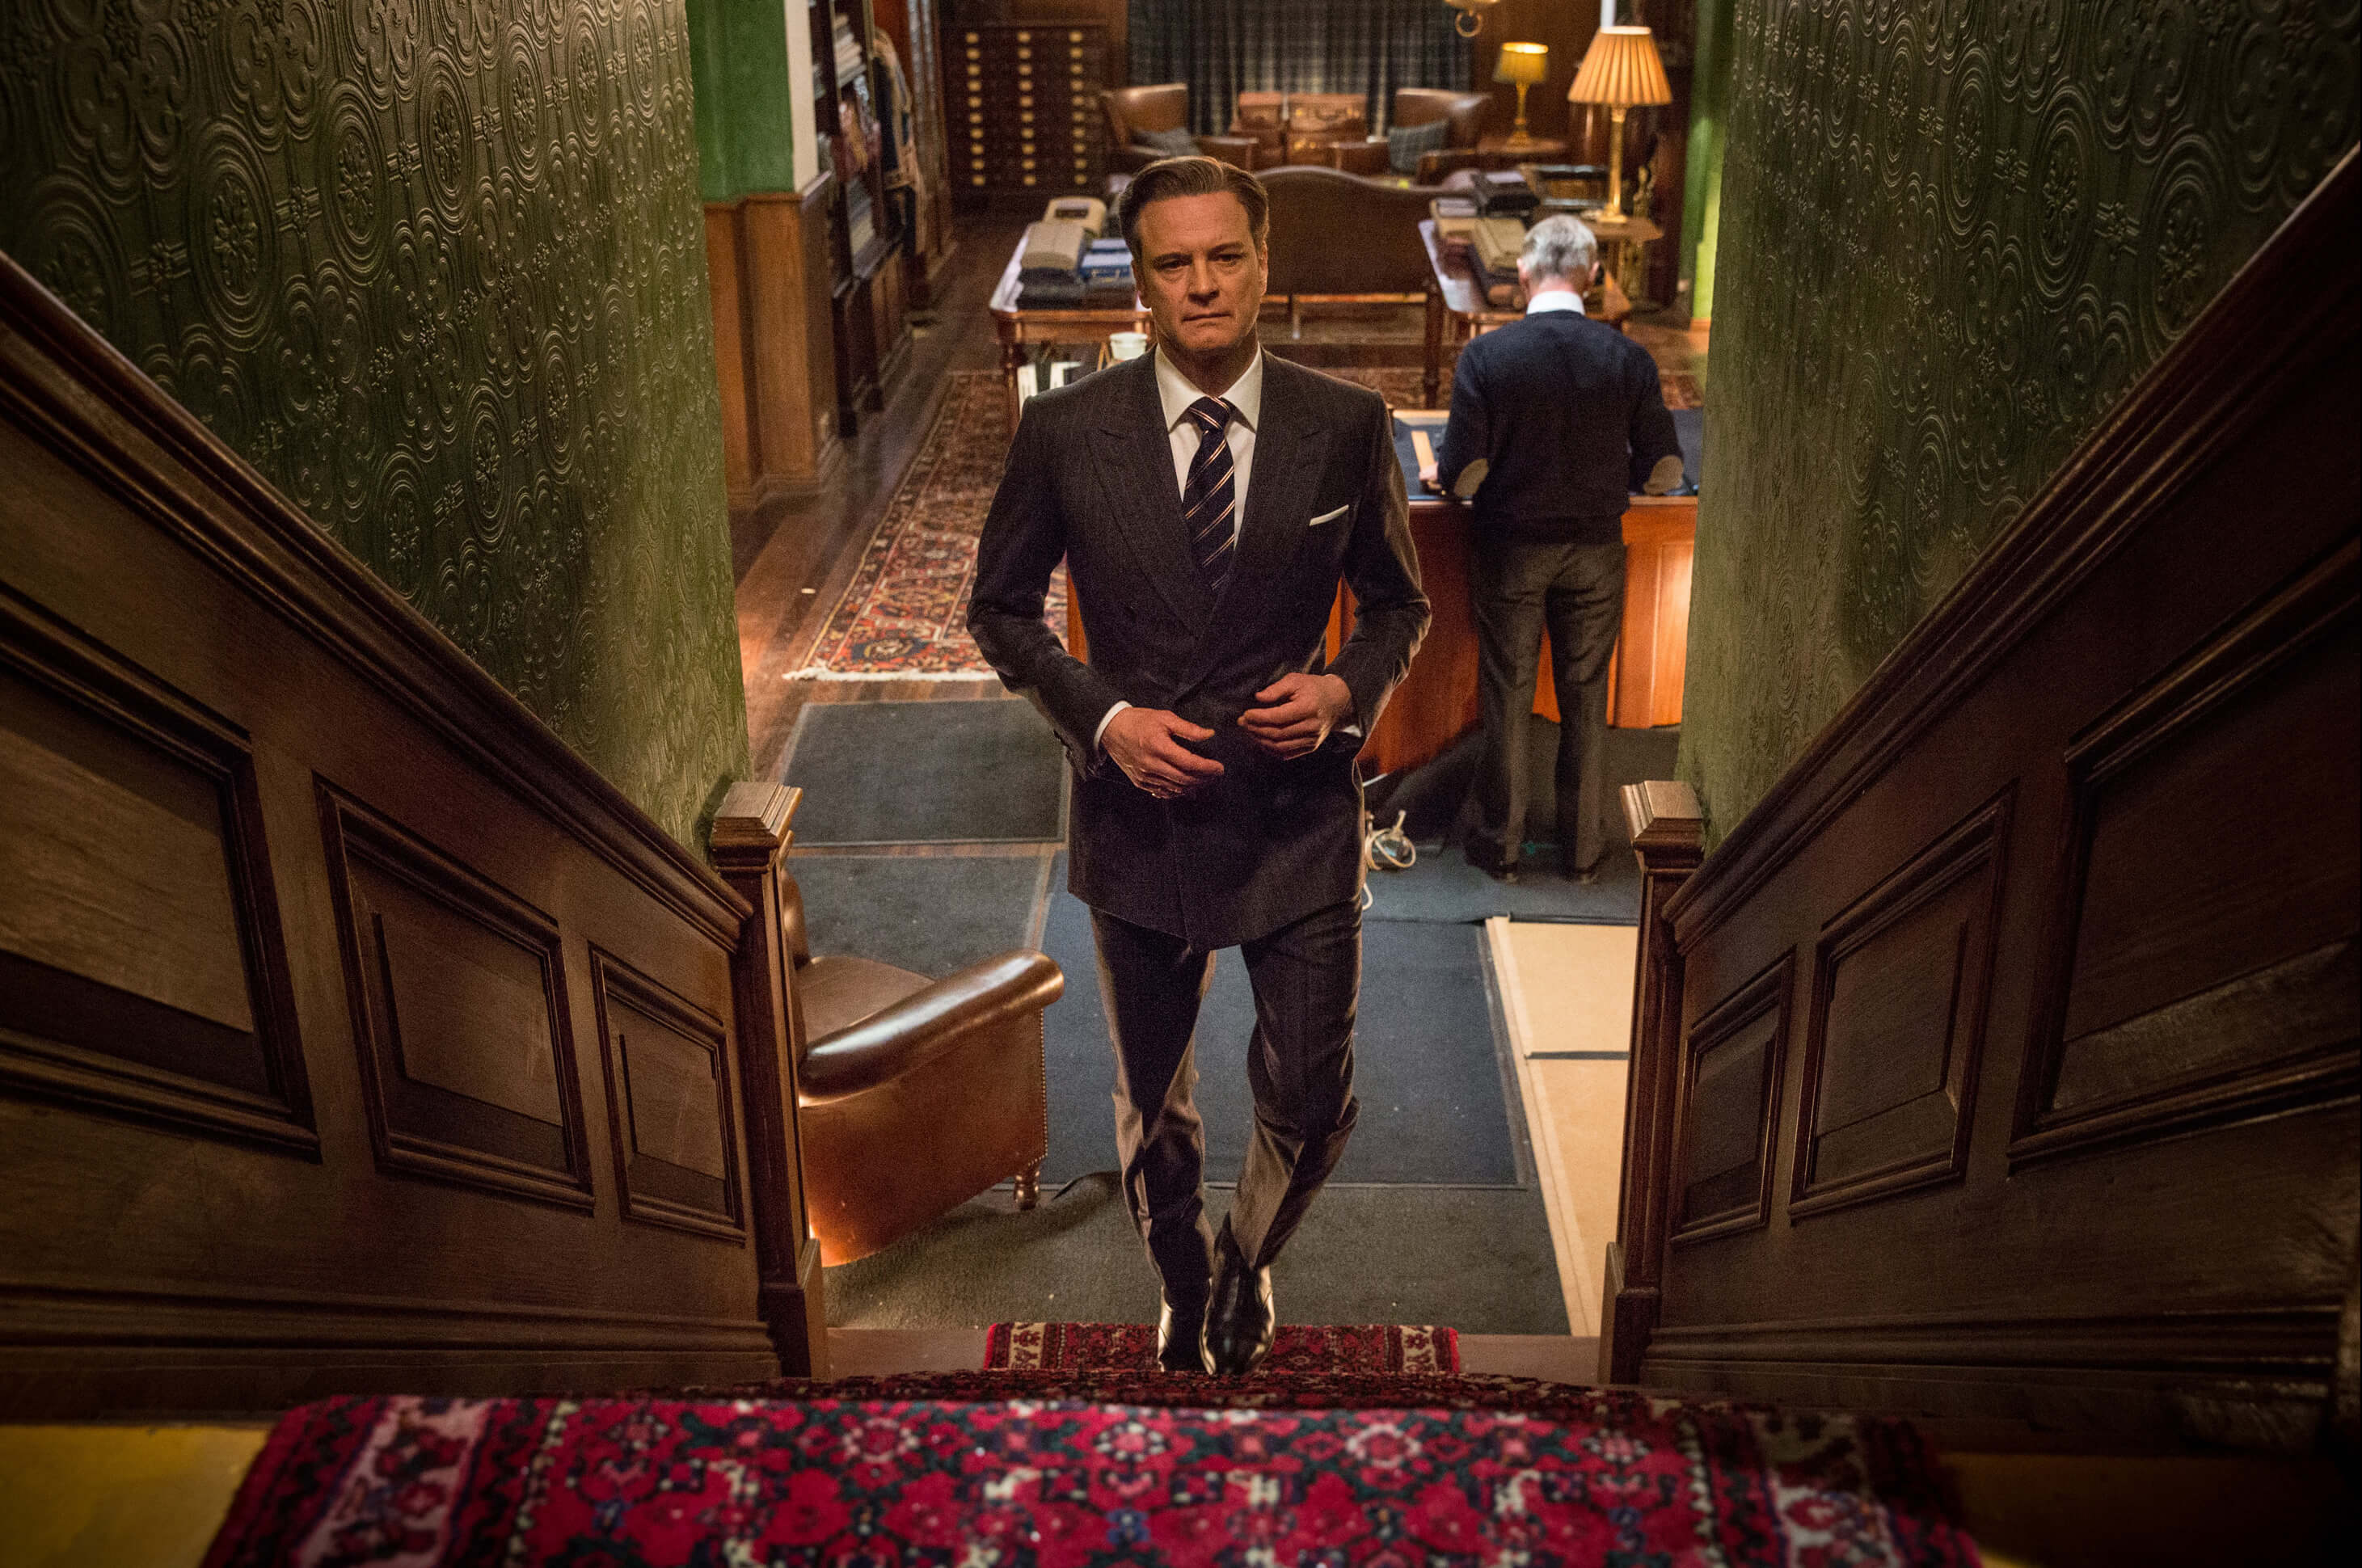 Colin in the movie Kingsman: The Secret Service